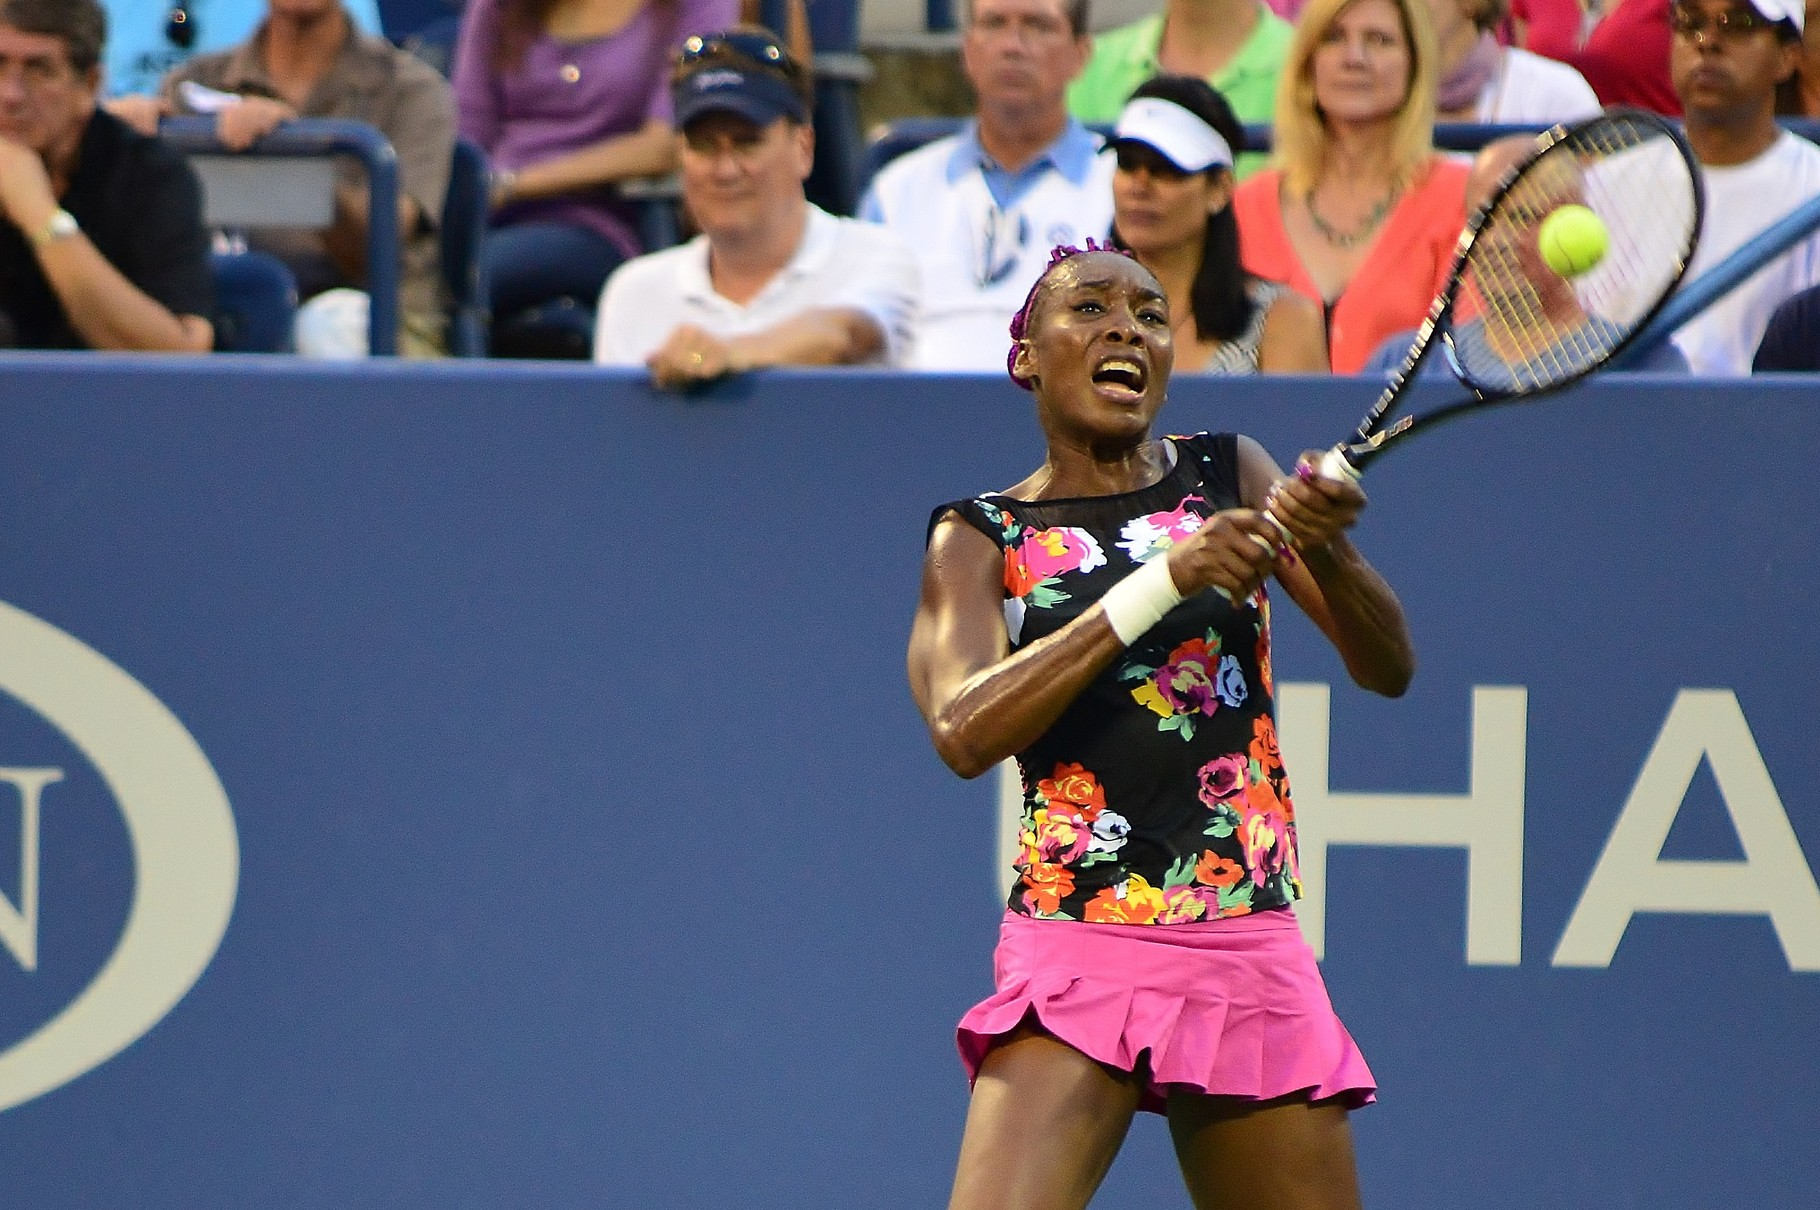 ... der wiedererstarkten Venus Williams zu tun. (Foto by: Edwin Martinez from The Bronx  [CC BY 2.0] über Wikimedia Commons)